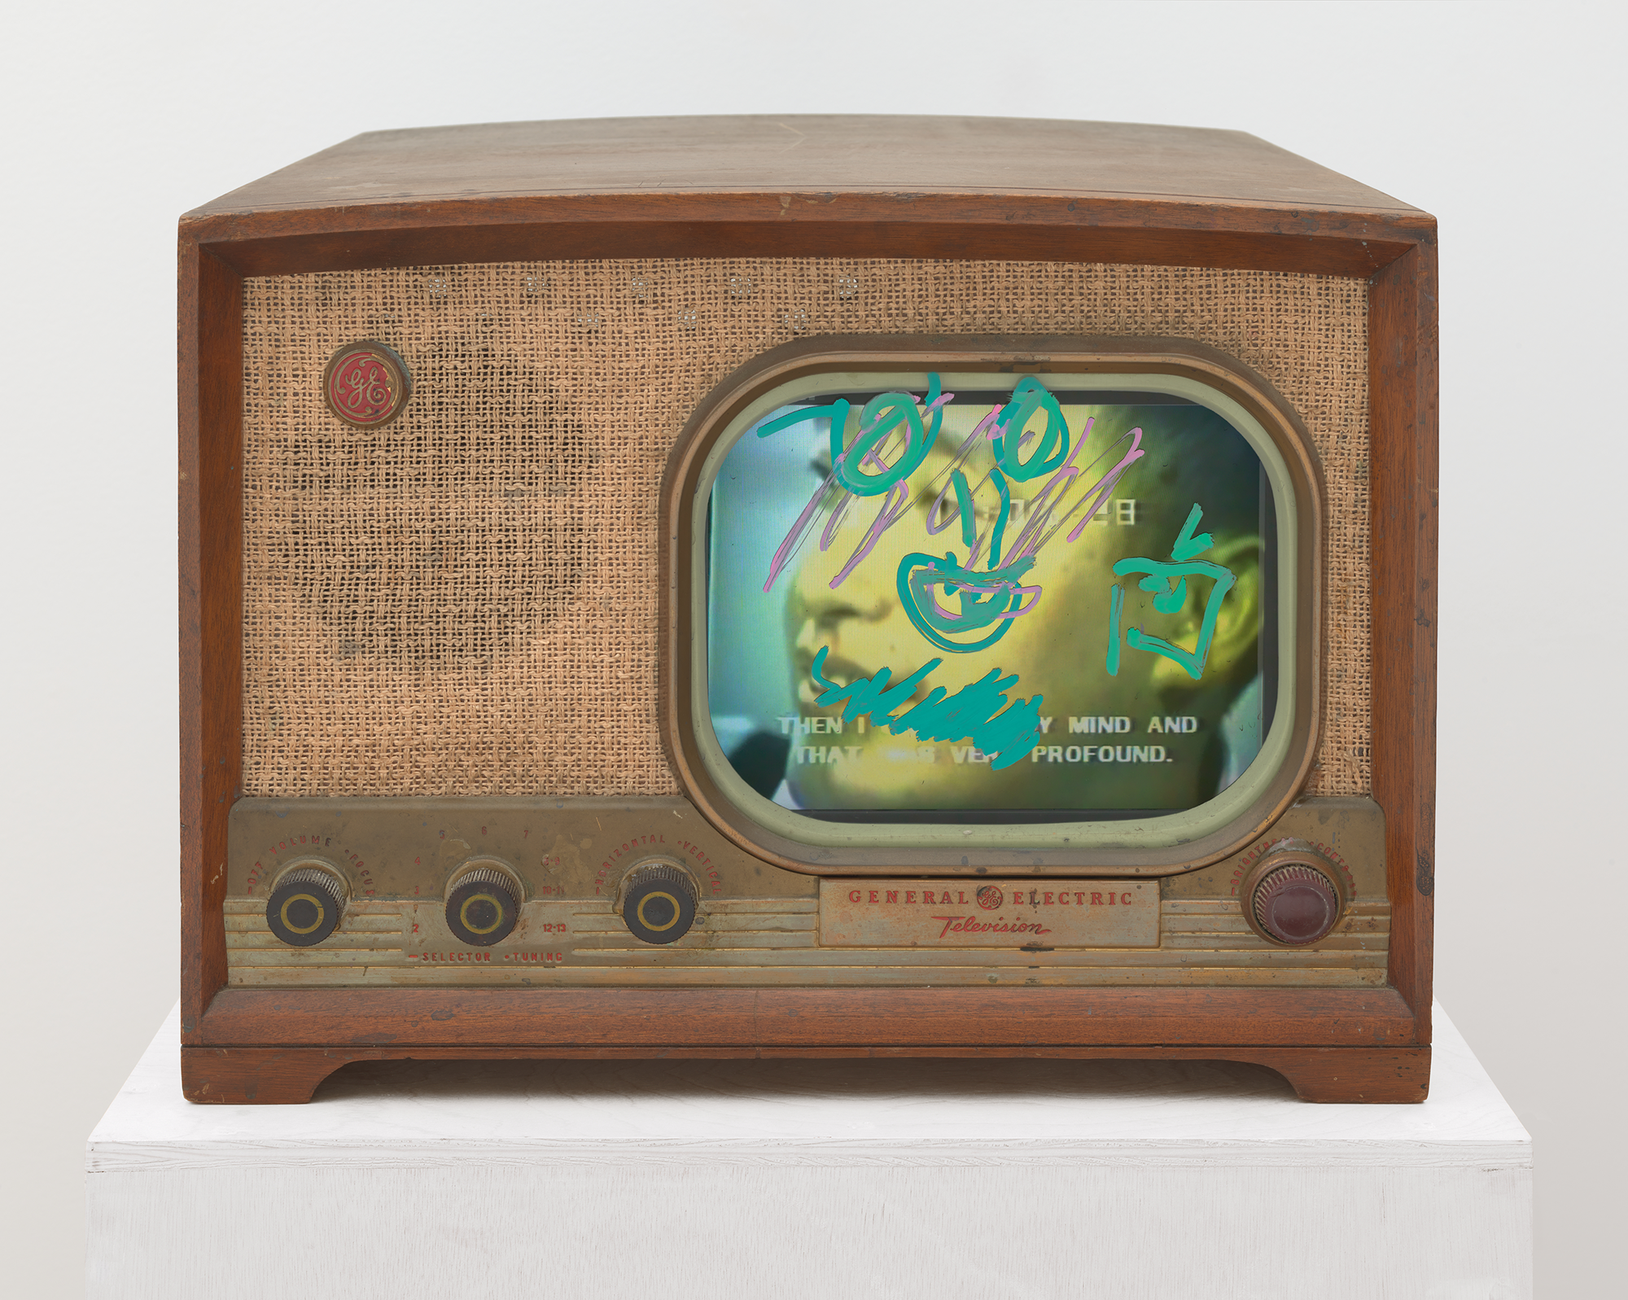 Old-fashioned General Electric television with a screen showing color video painted over with opaque neon scribbles